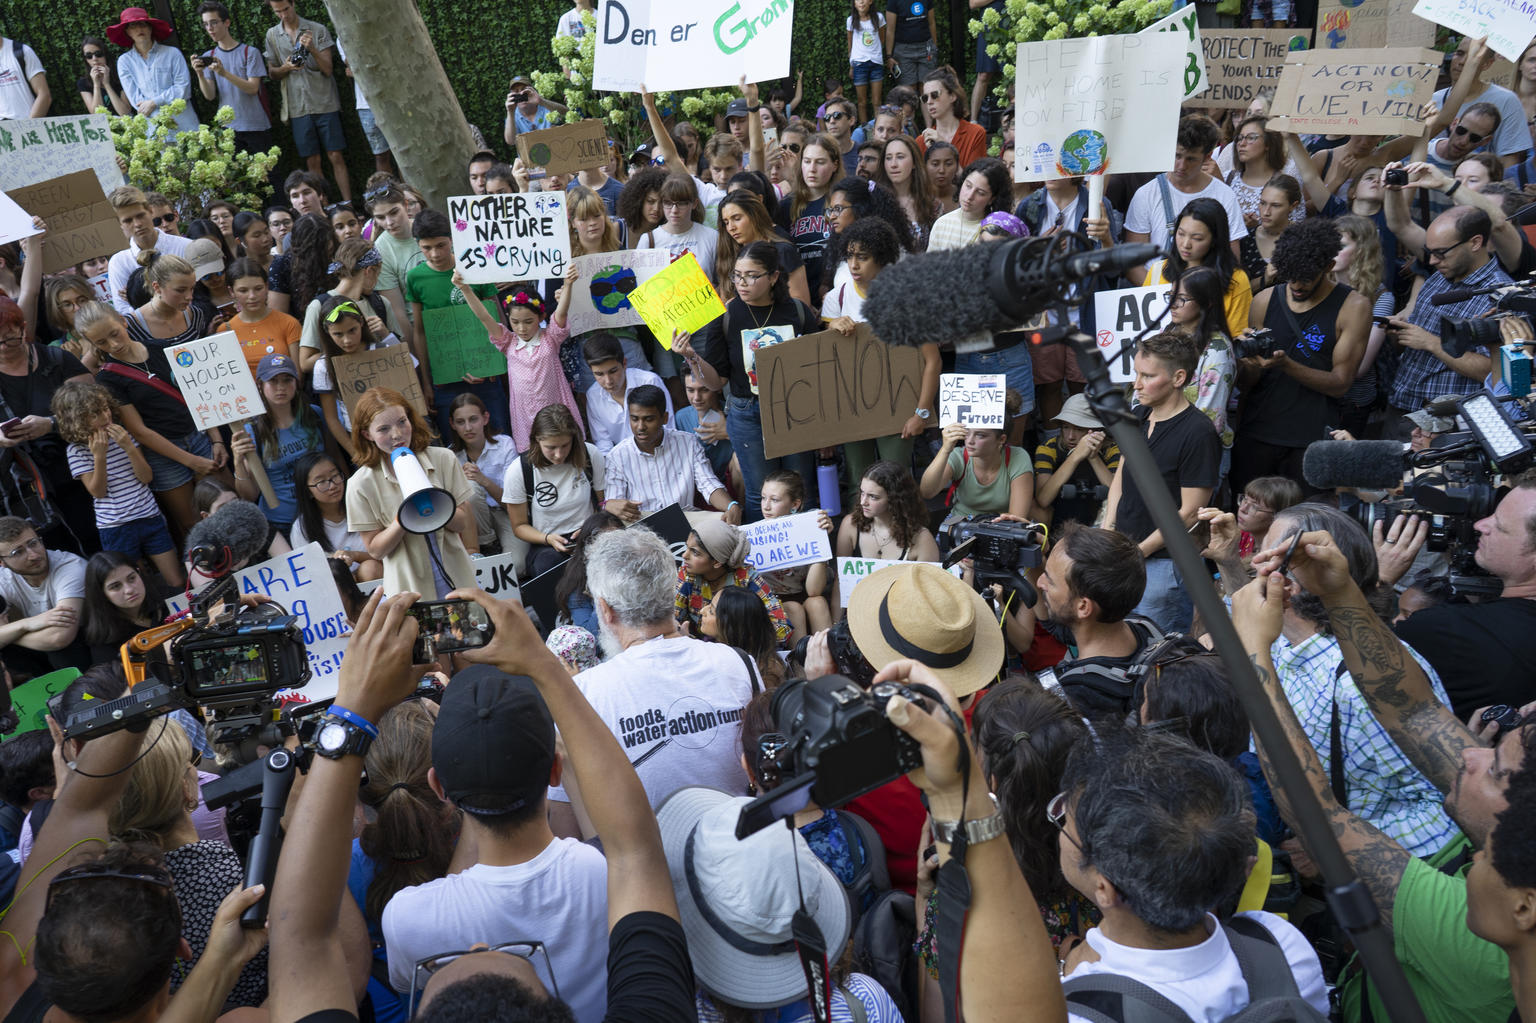 Children protesting in a crowd with cameras facing them